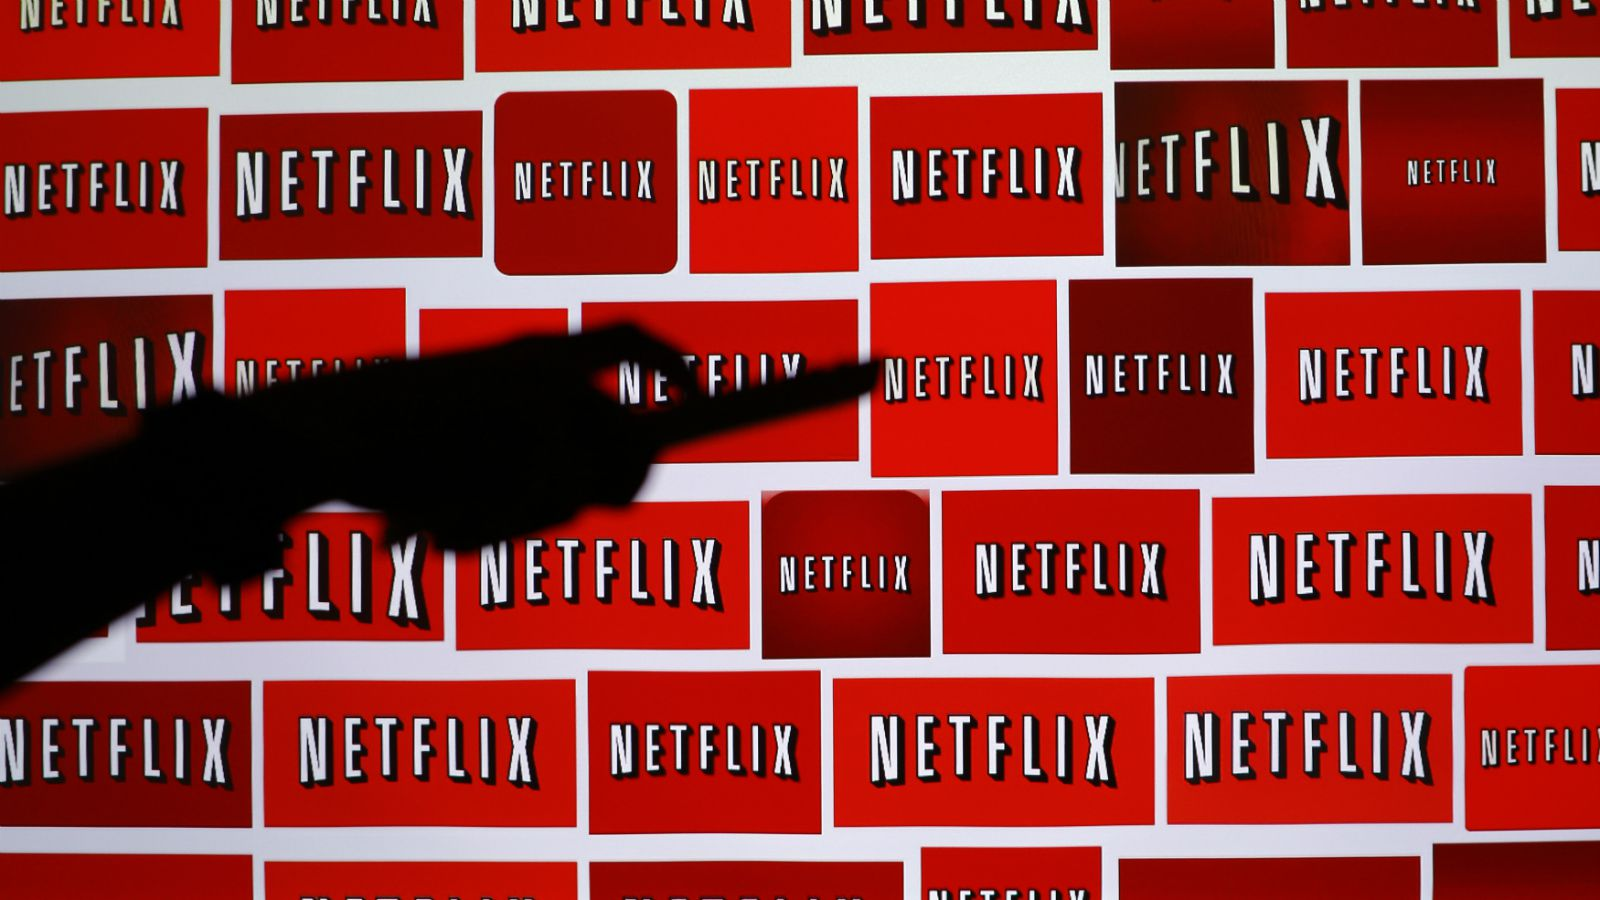 The Netflix logo is shown in this illustration photograph in Encinitas, California October 14, 2014. Netflix Inc shares were down 3.1 percent at $435.28 after the announcement. The streaming video company will announced its quarterly results later on October 15. Picture taken October 14, 2014. REUTERS/Mike Blake (UNITED STATES - Tags: ENTERTAINMENT MEDIA BUSINESS LOGO)